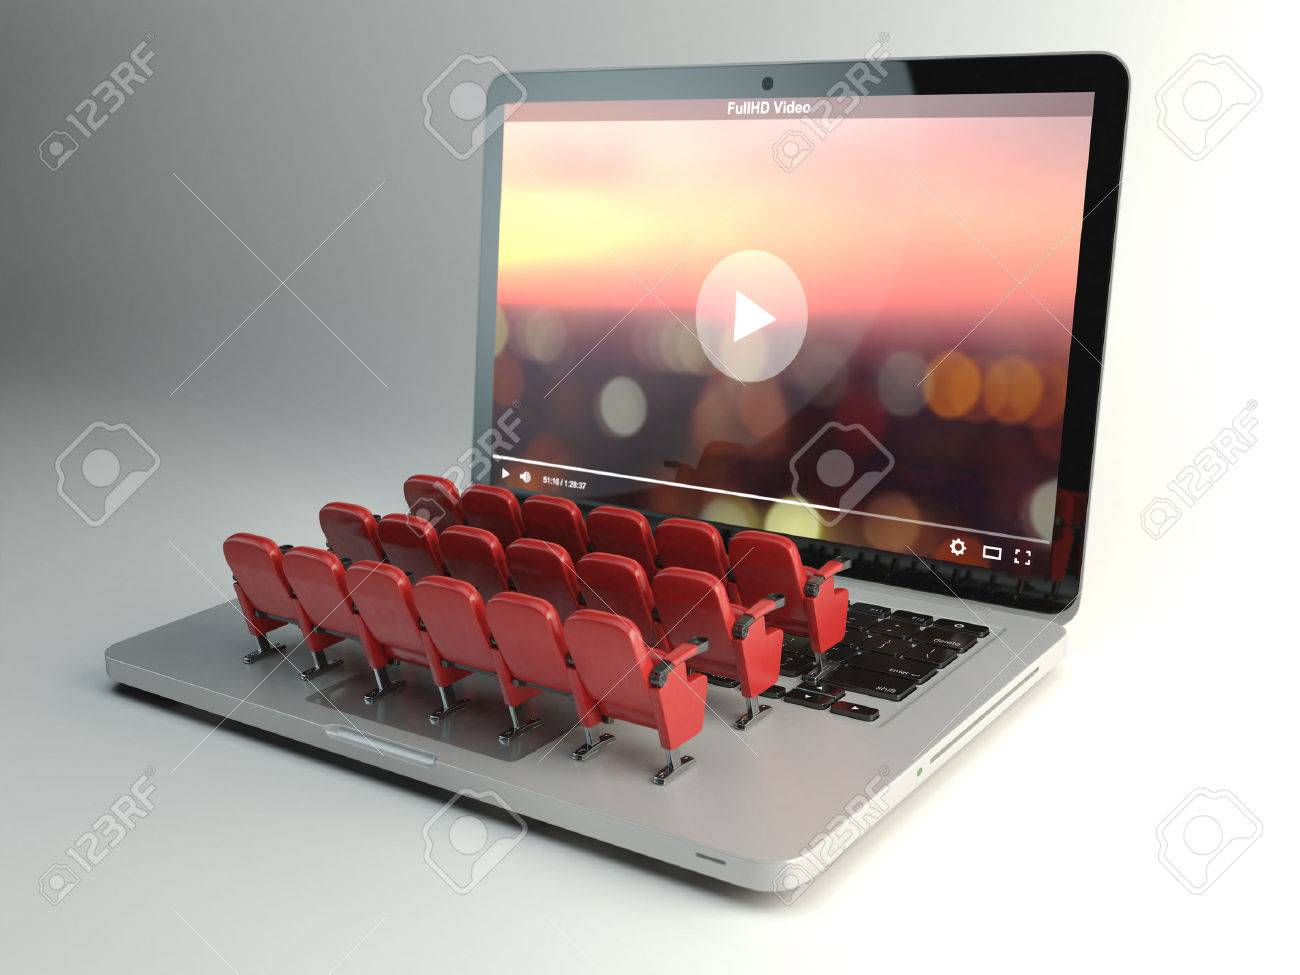 Video player app or home cinema concept. Laptop and rows of cinema seats, 3d illustration - 56606798